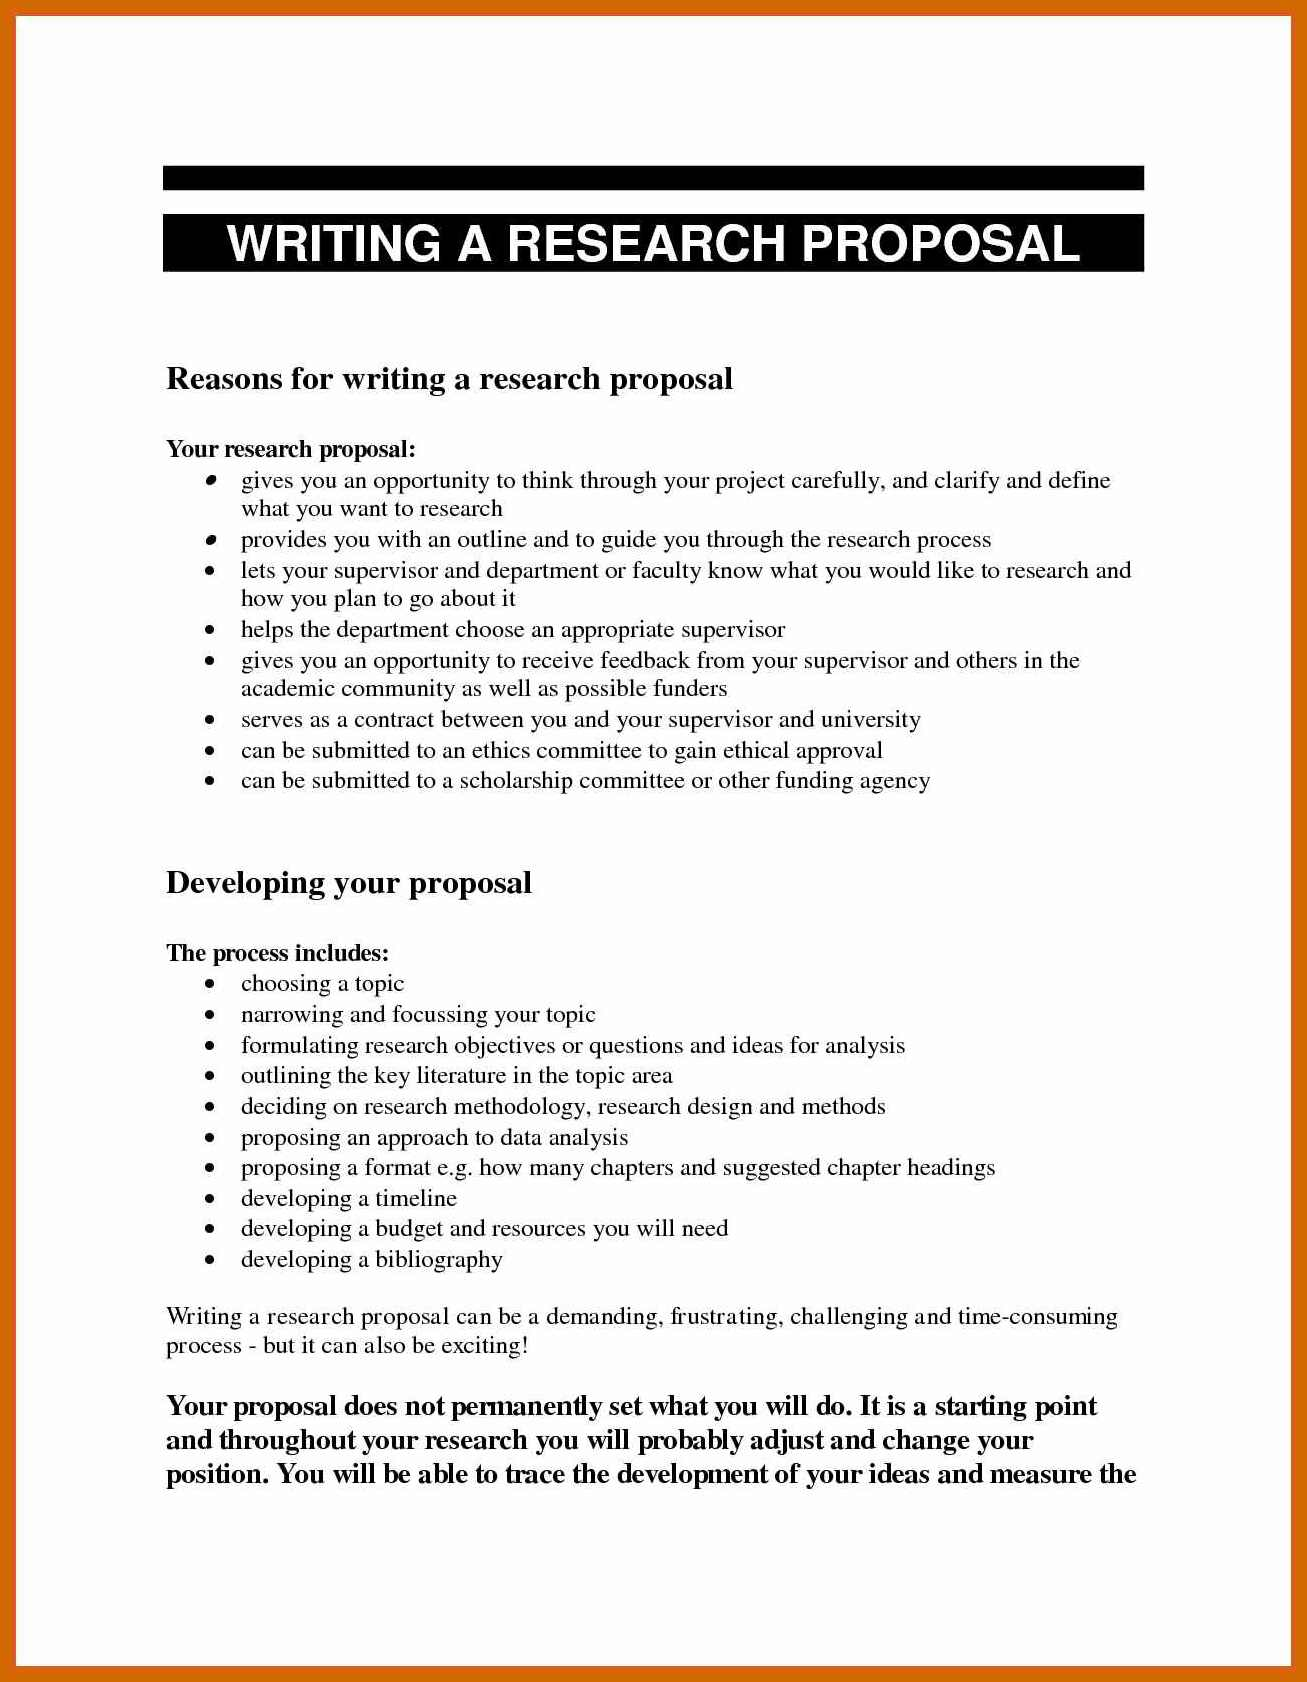 022 Research Paper Proposal Sample Writing Example Essay Topics Questions Best Wonderful Template Write 5 Of A Topic Full